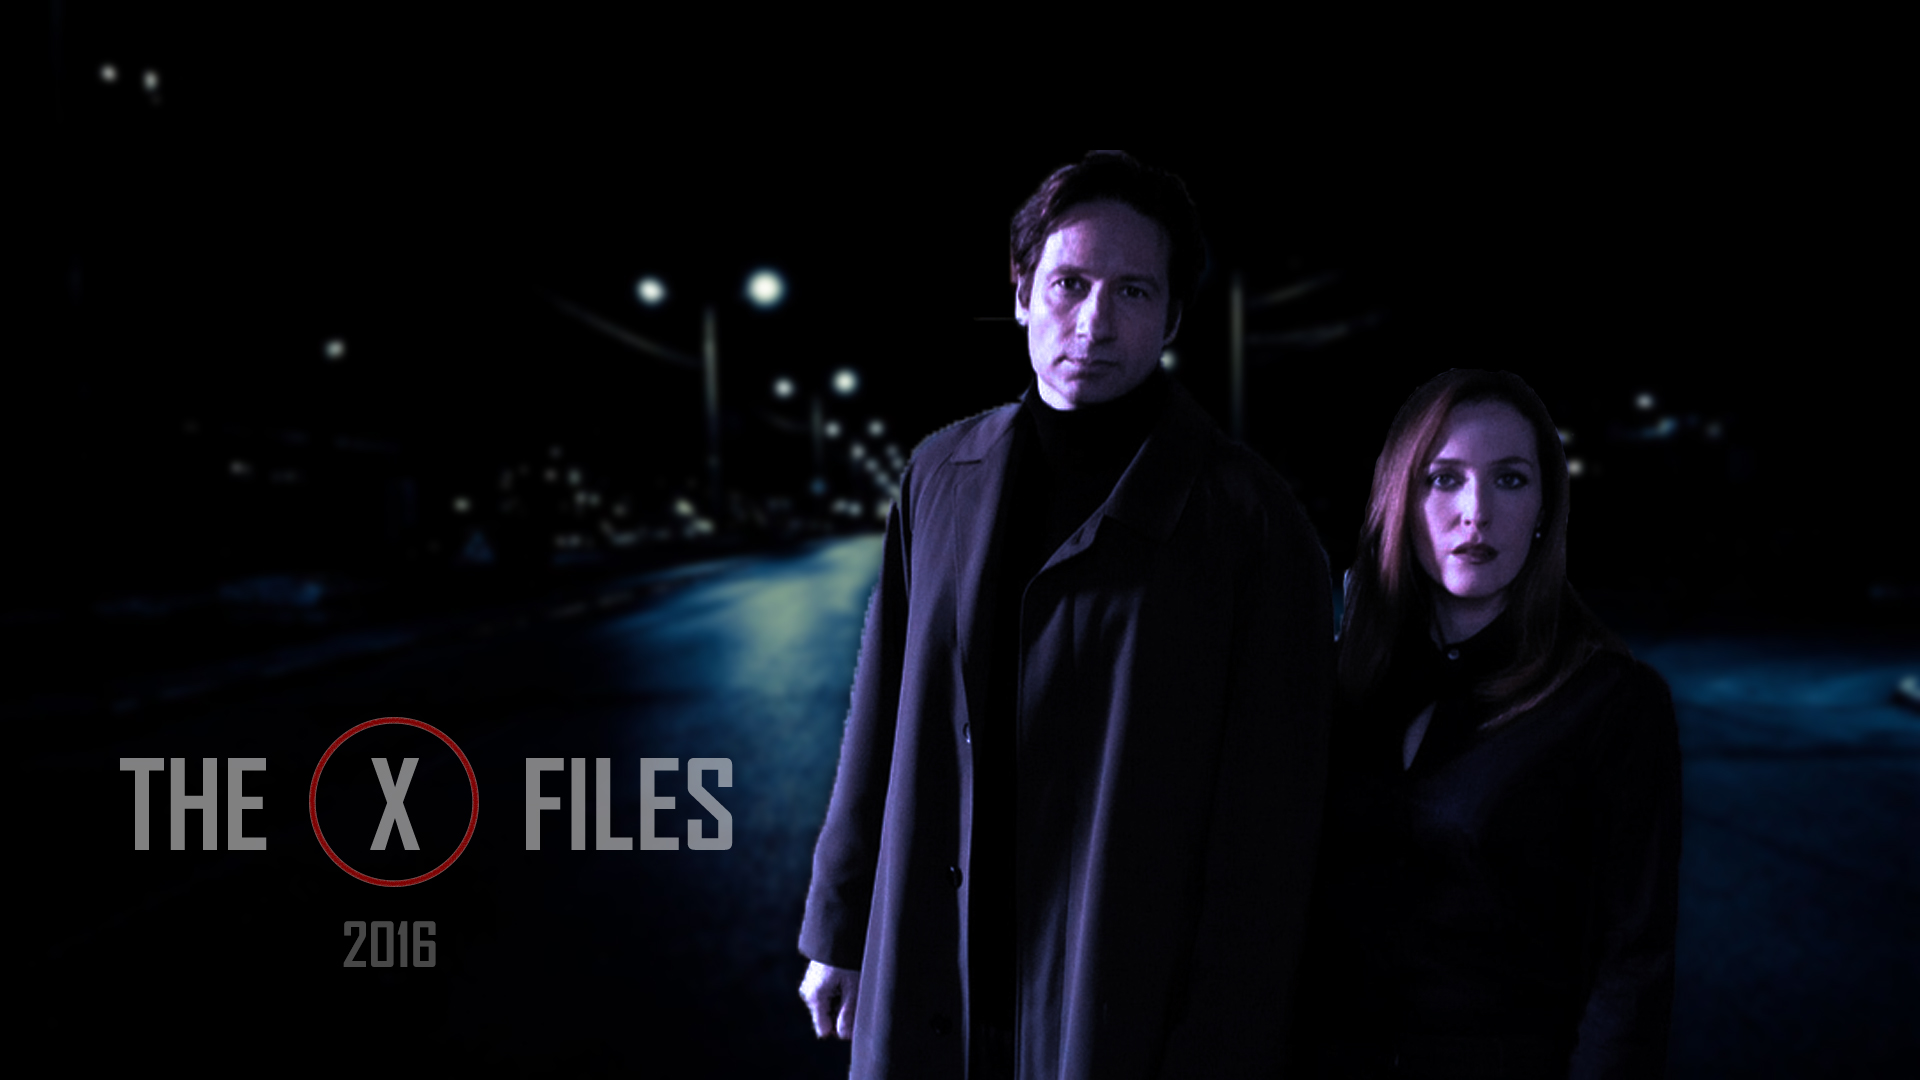 the xfiles 2016 hd wallpapers